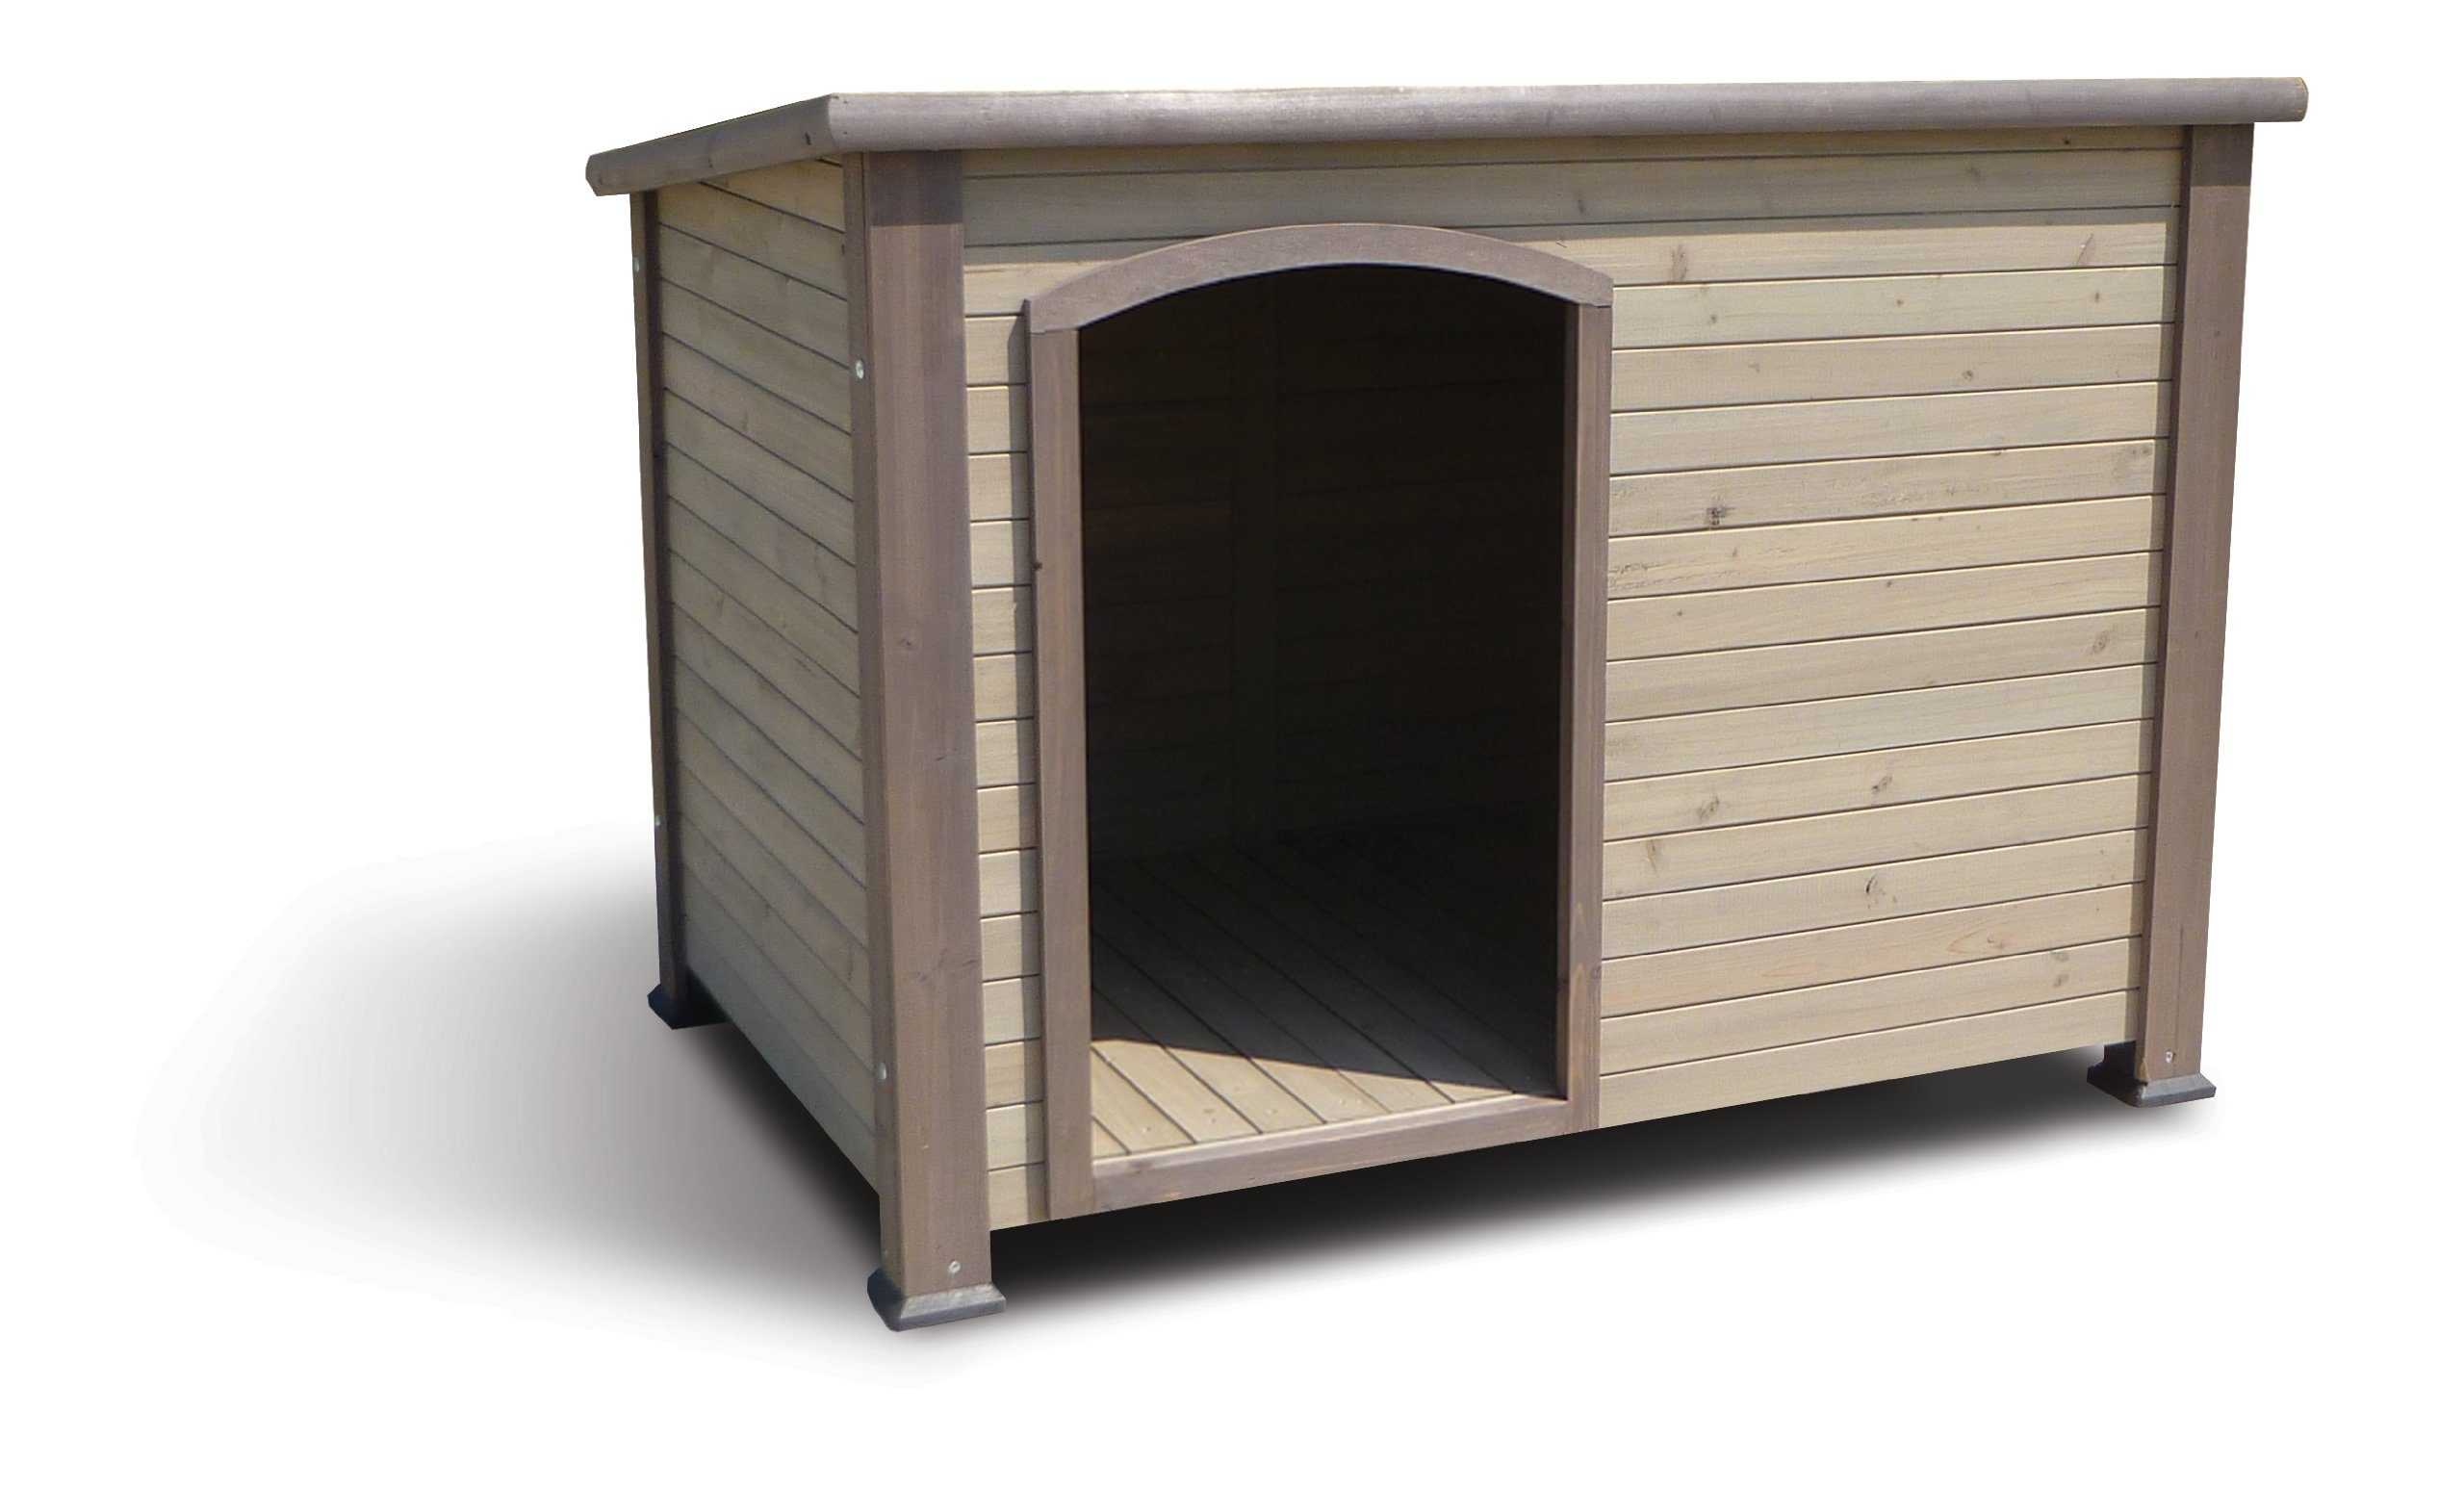 Precision Pet Extreme Log Cabin Small 33.3 in. x 24.6 in. x 22.2 in. Taupe by Petmate